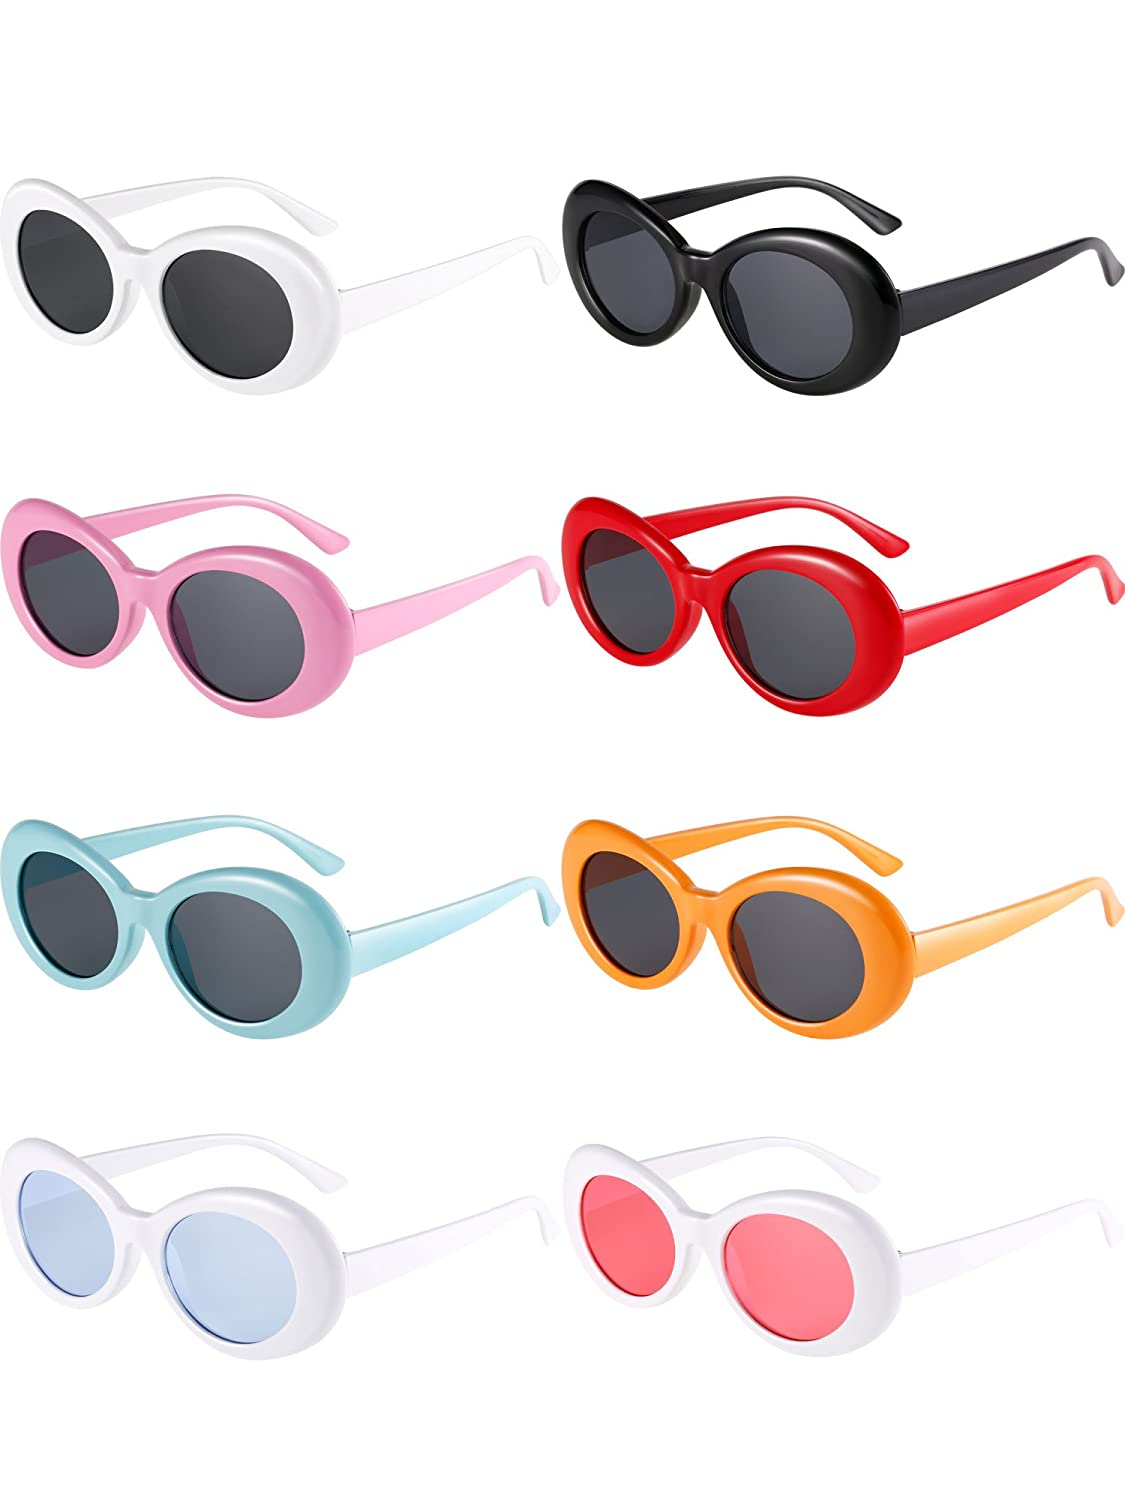 Gejoy 8 Pairs of Clout Oval Goggles Retro Kurt Mod Thick Frame Round Lens Sunglasses Goggles 8 Colors for Women Men (color 1)